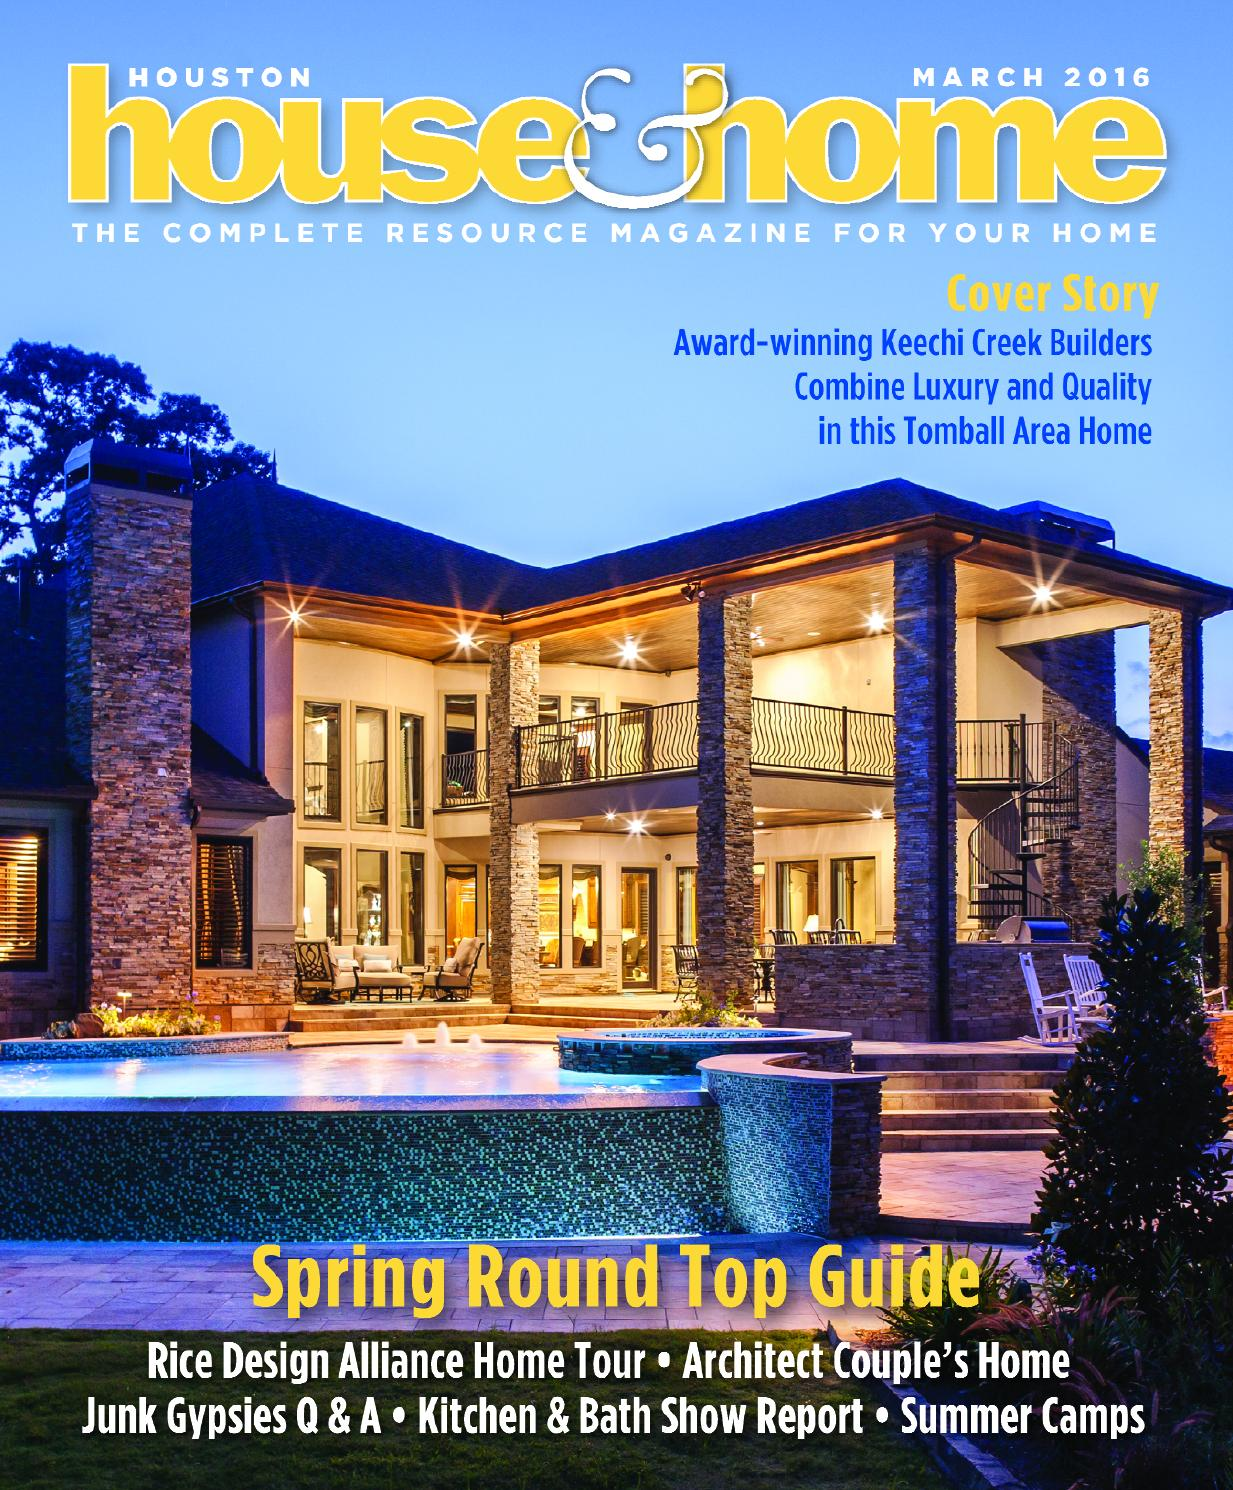 Award Winning Log Home Builders: 0316 Houhousehome Vir By Houston House & Home Magazine